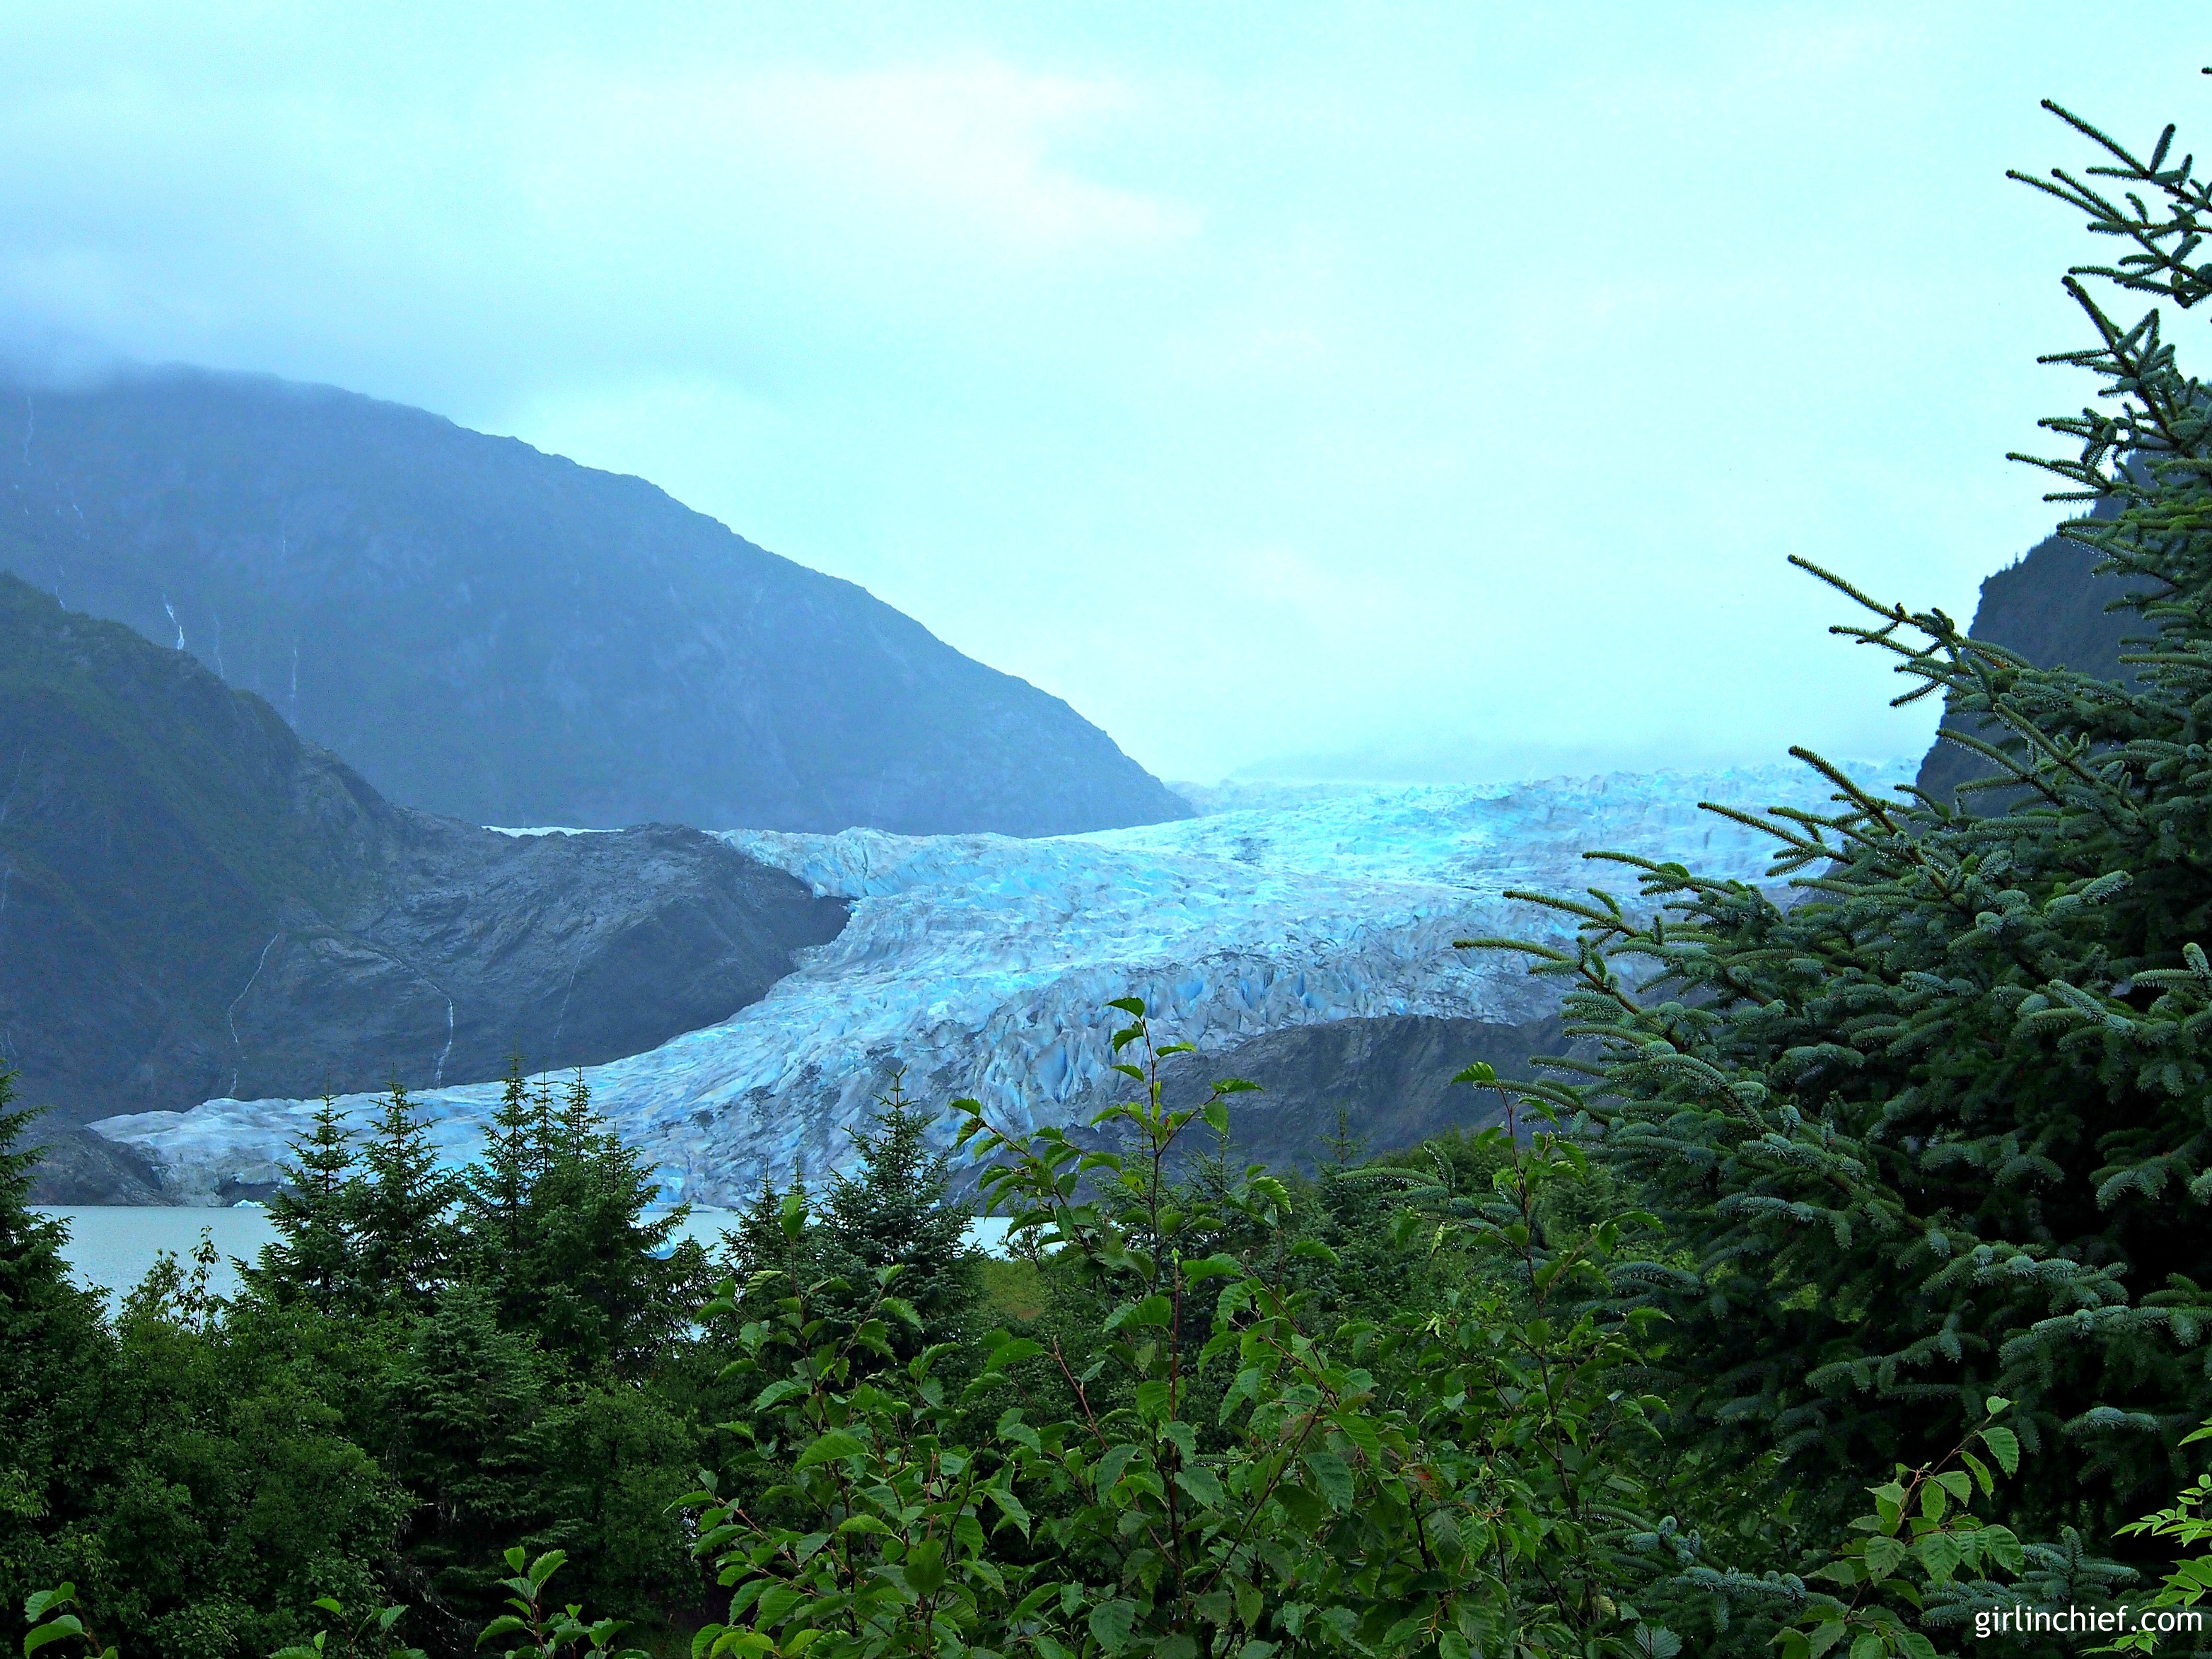 Alaska Cruise: Mendenhall Glacier and Whale Watching in Juneau